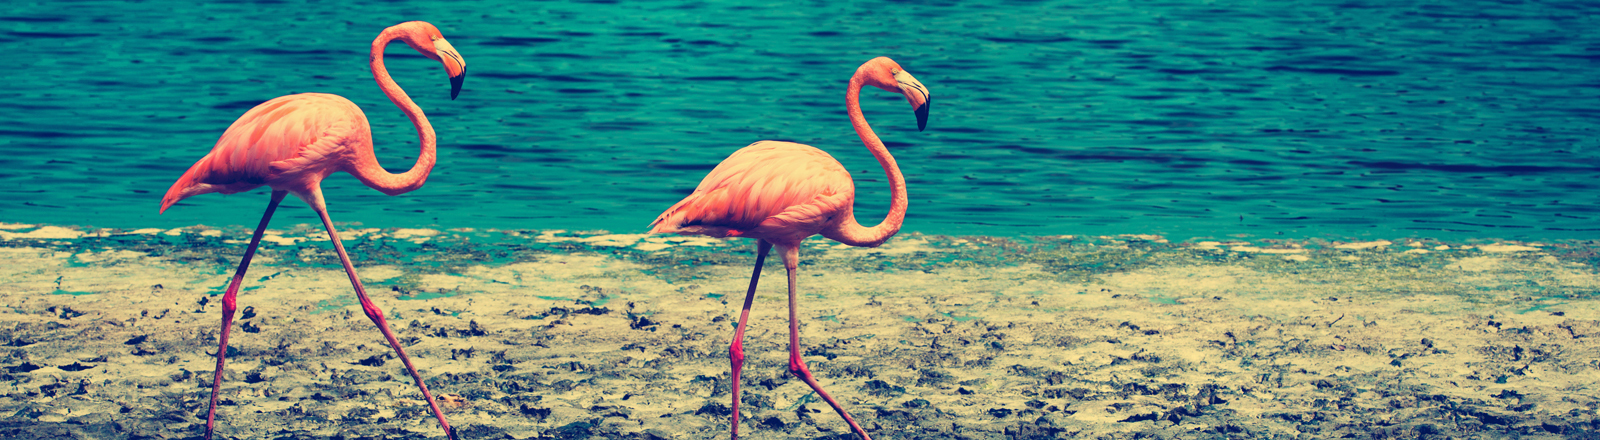 Flamingos am Strand.